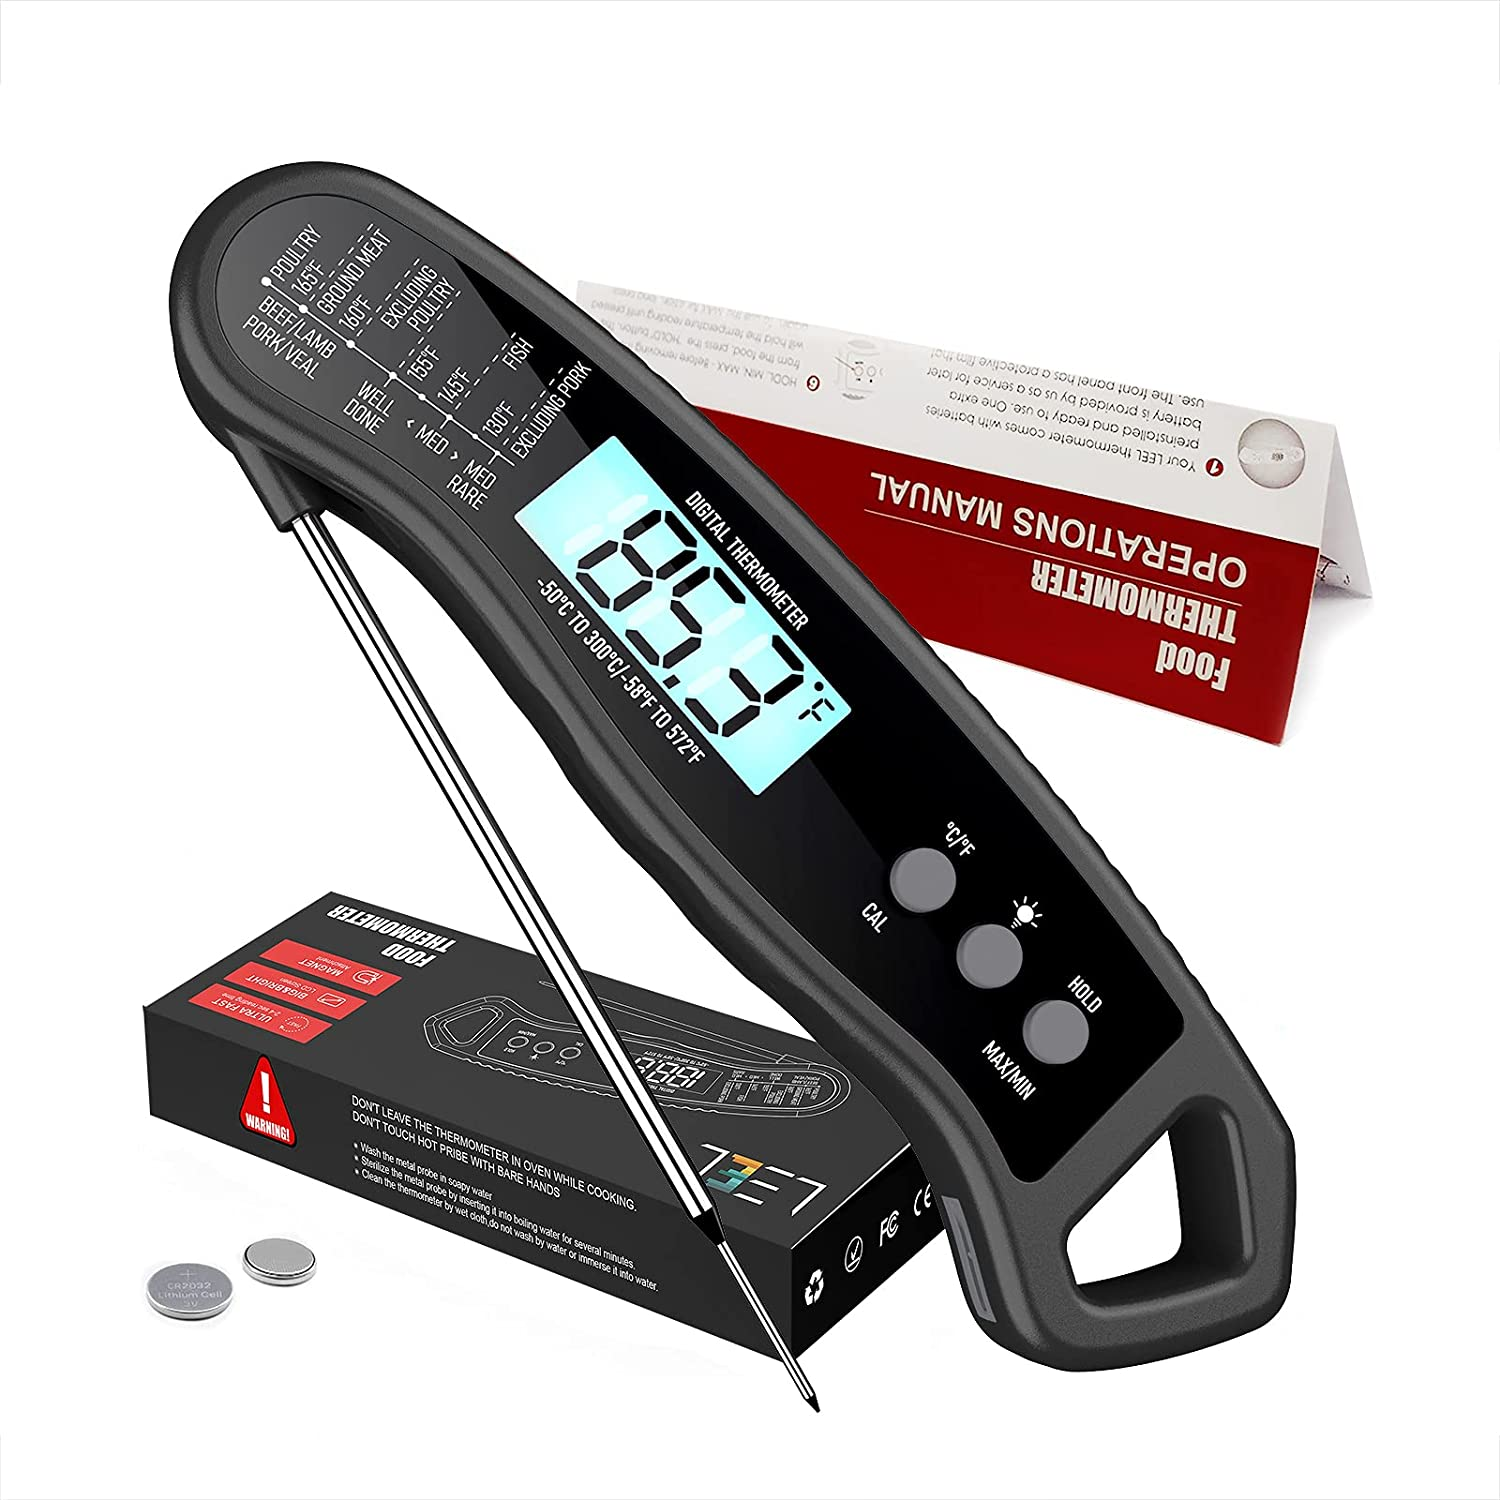 LEEL Instant Choice Read Meat Thermometer Fast Wate Precise Sale item Back Light